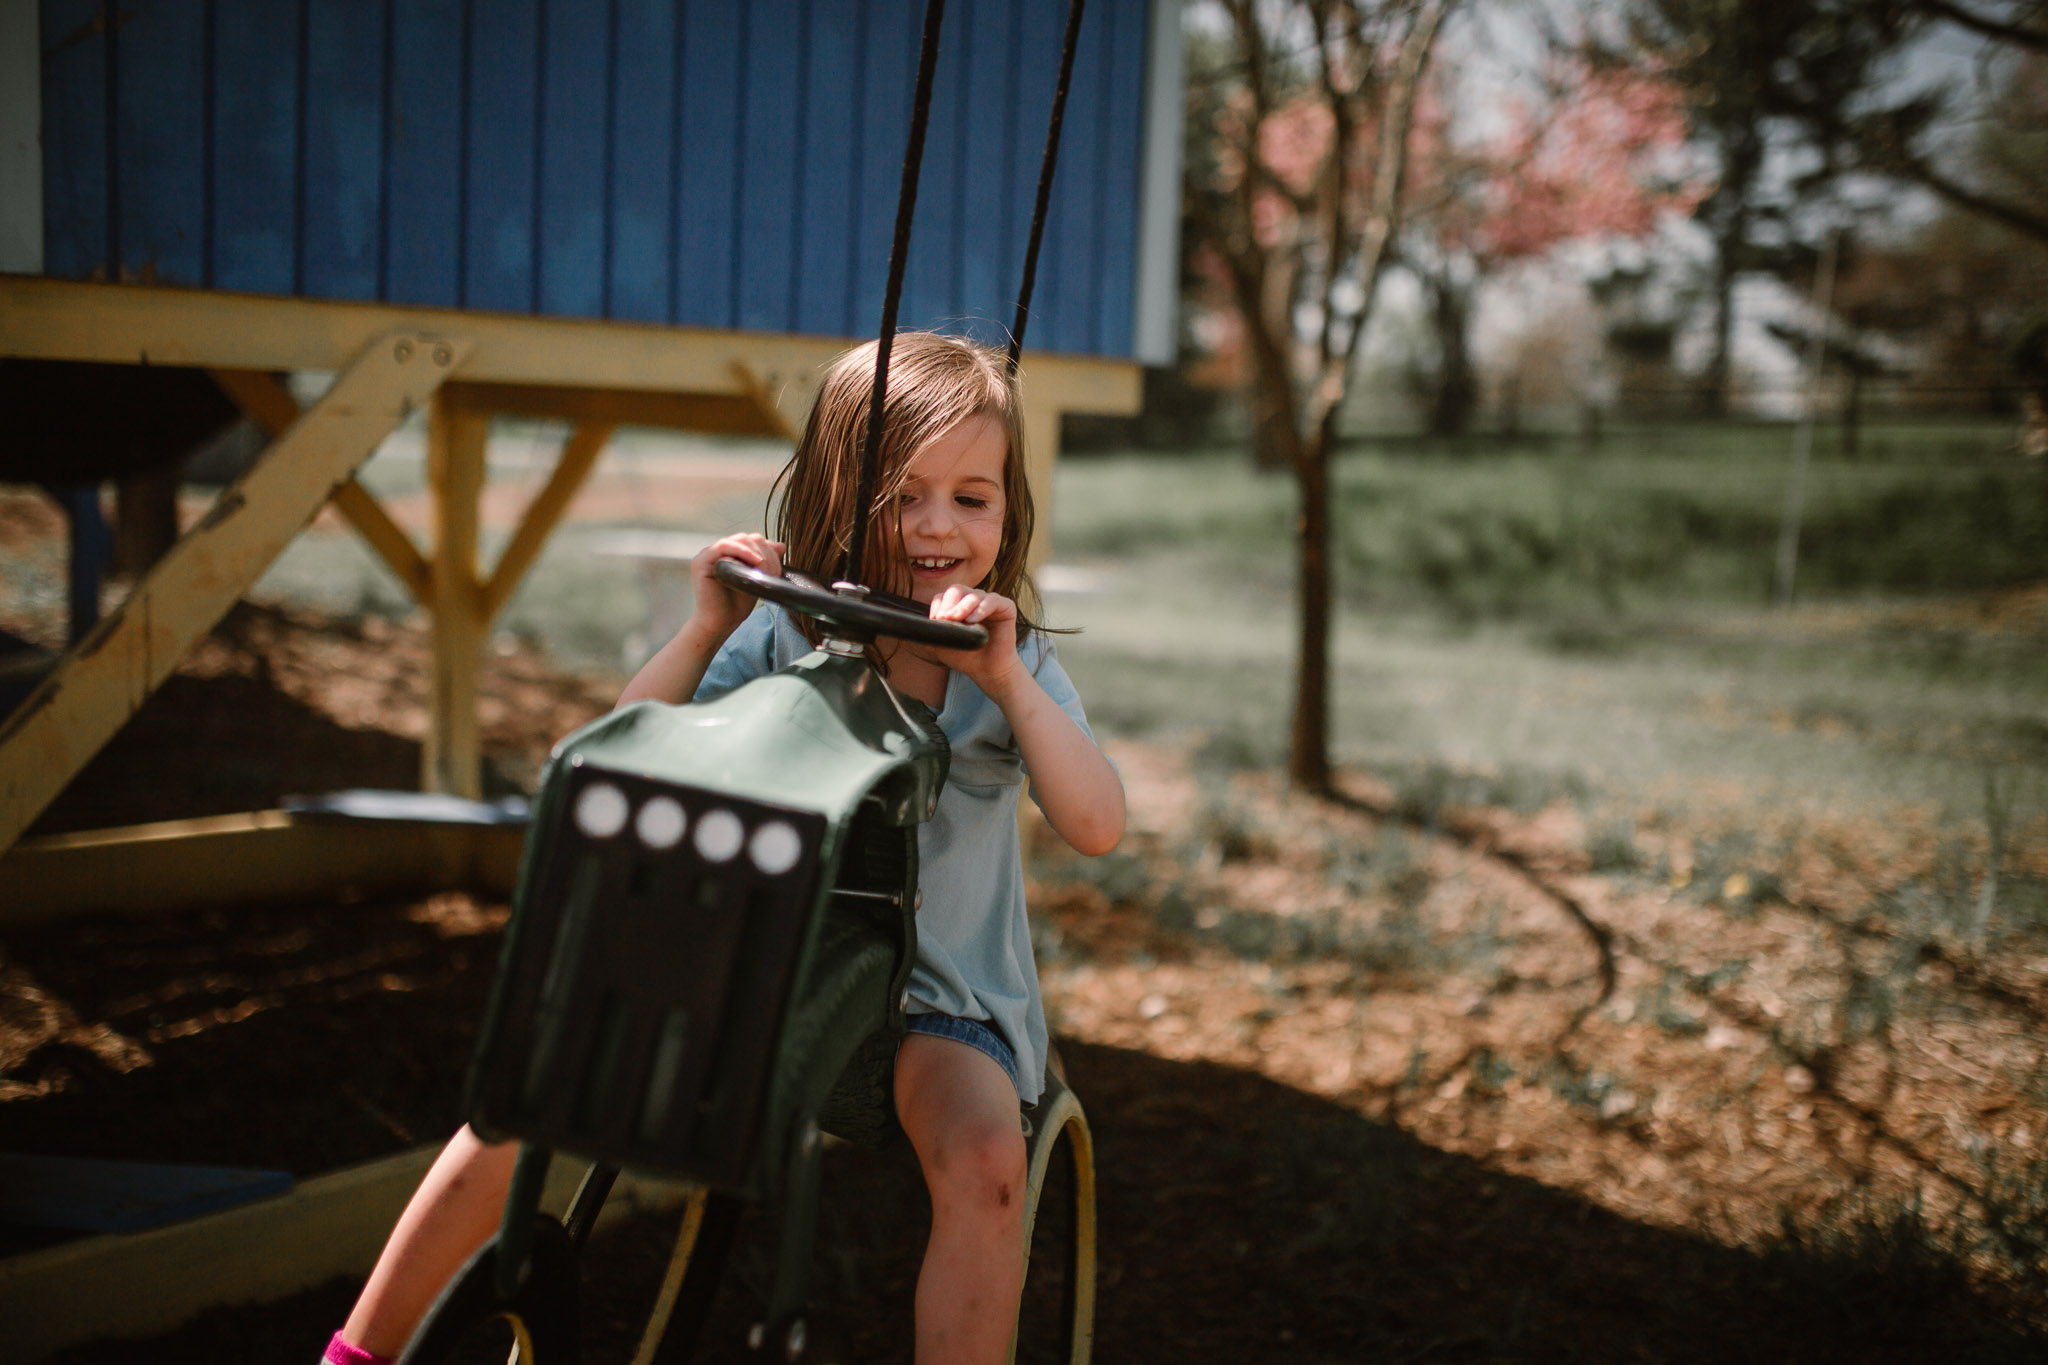 girl in a blue dress rides a swing shaped like a tractor at Burnside Farm in Virginia